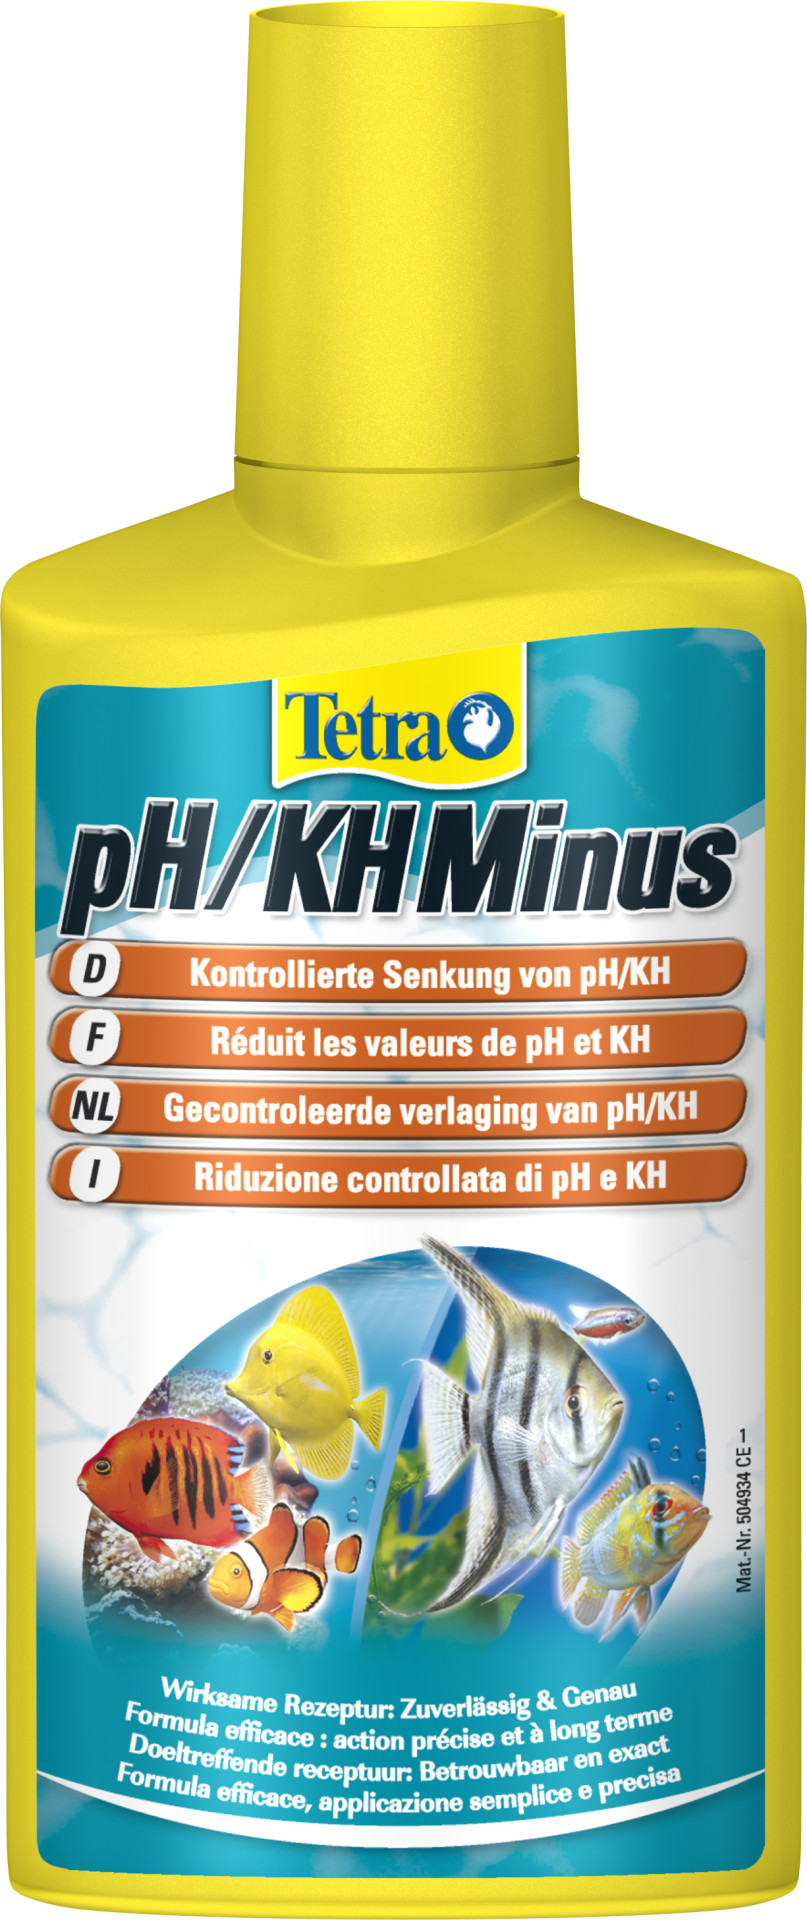 Tetra Aqua pH/KH Minus 250 ml